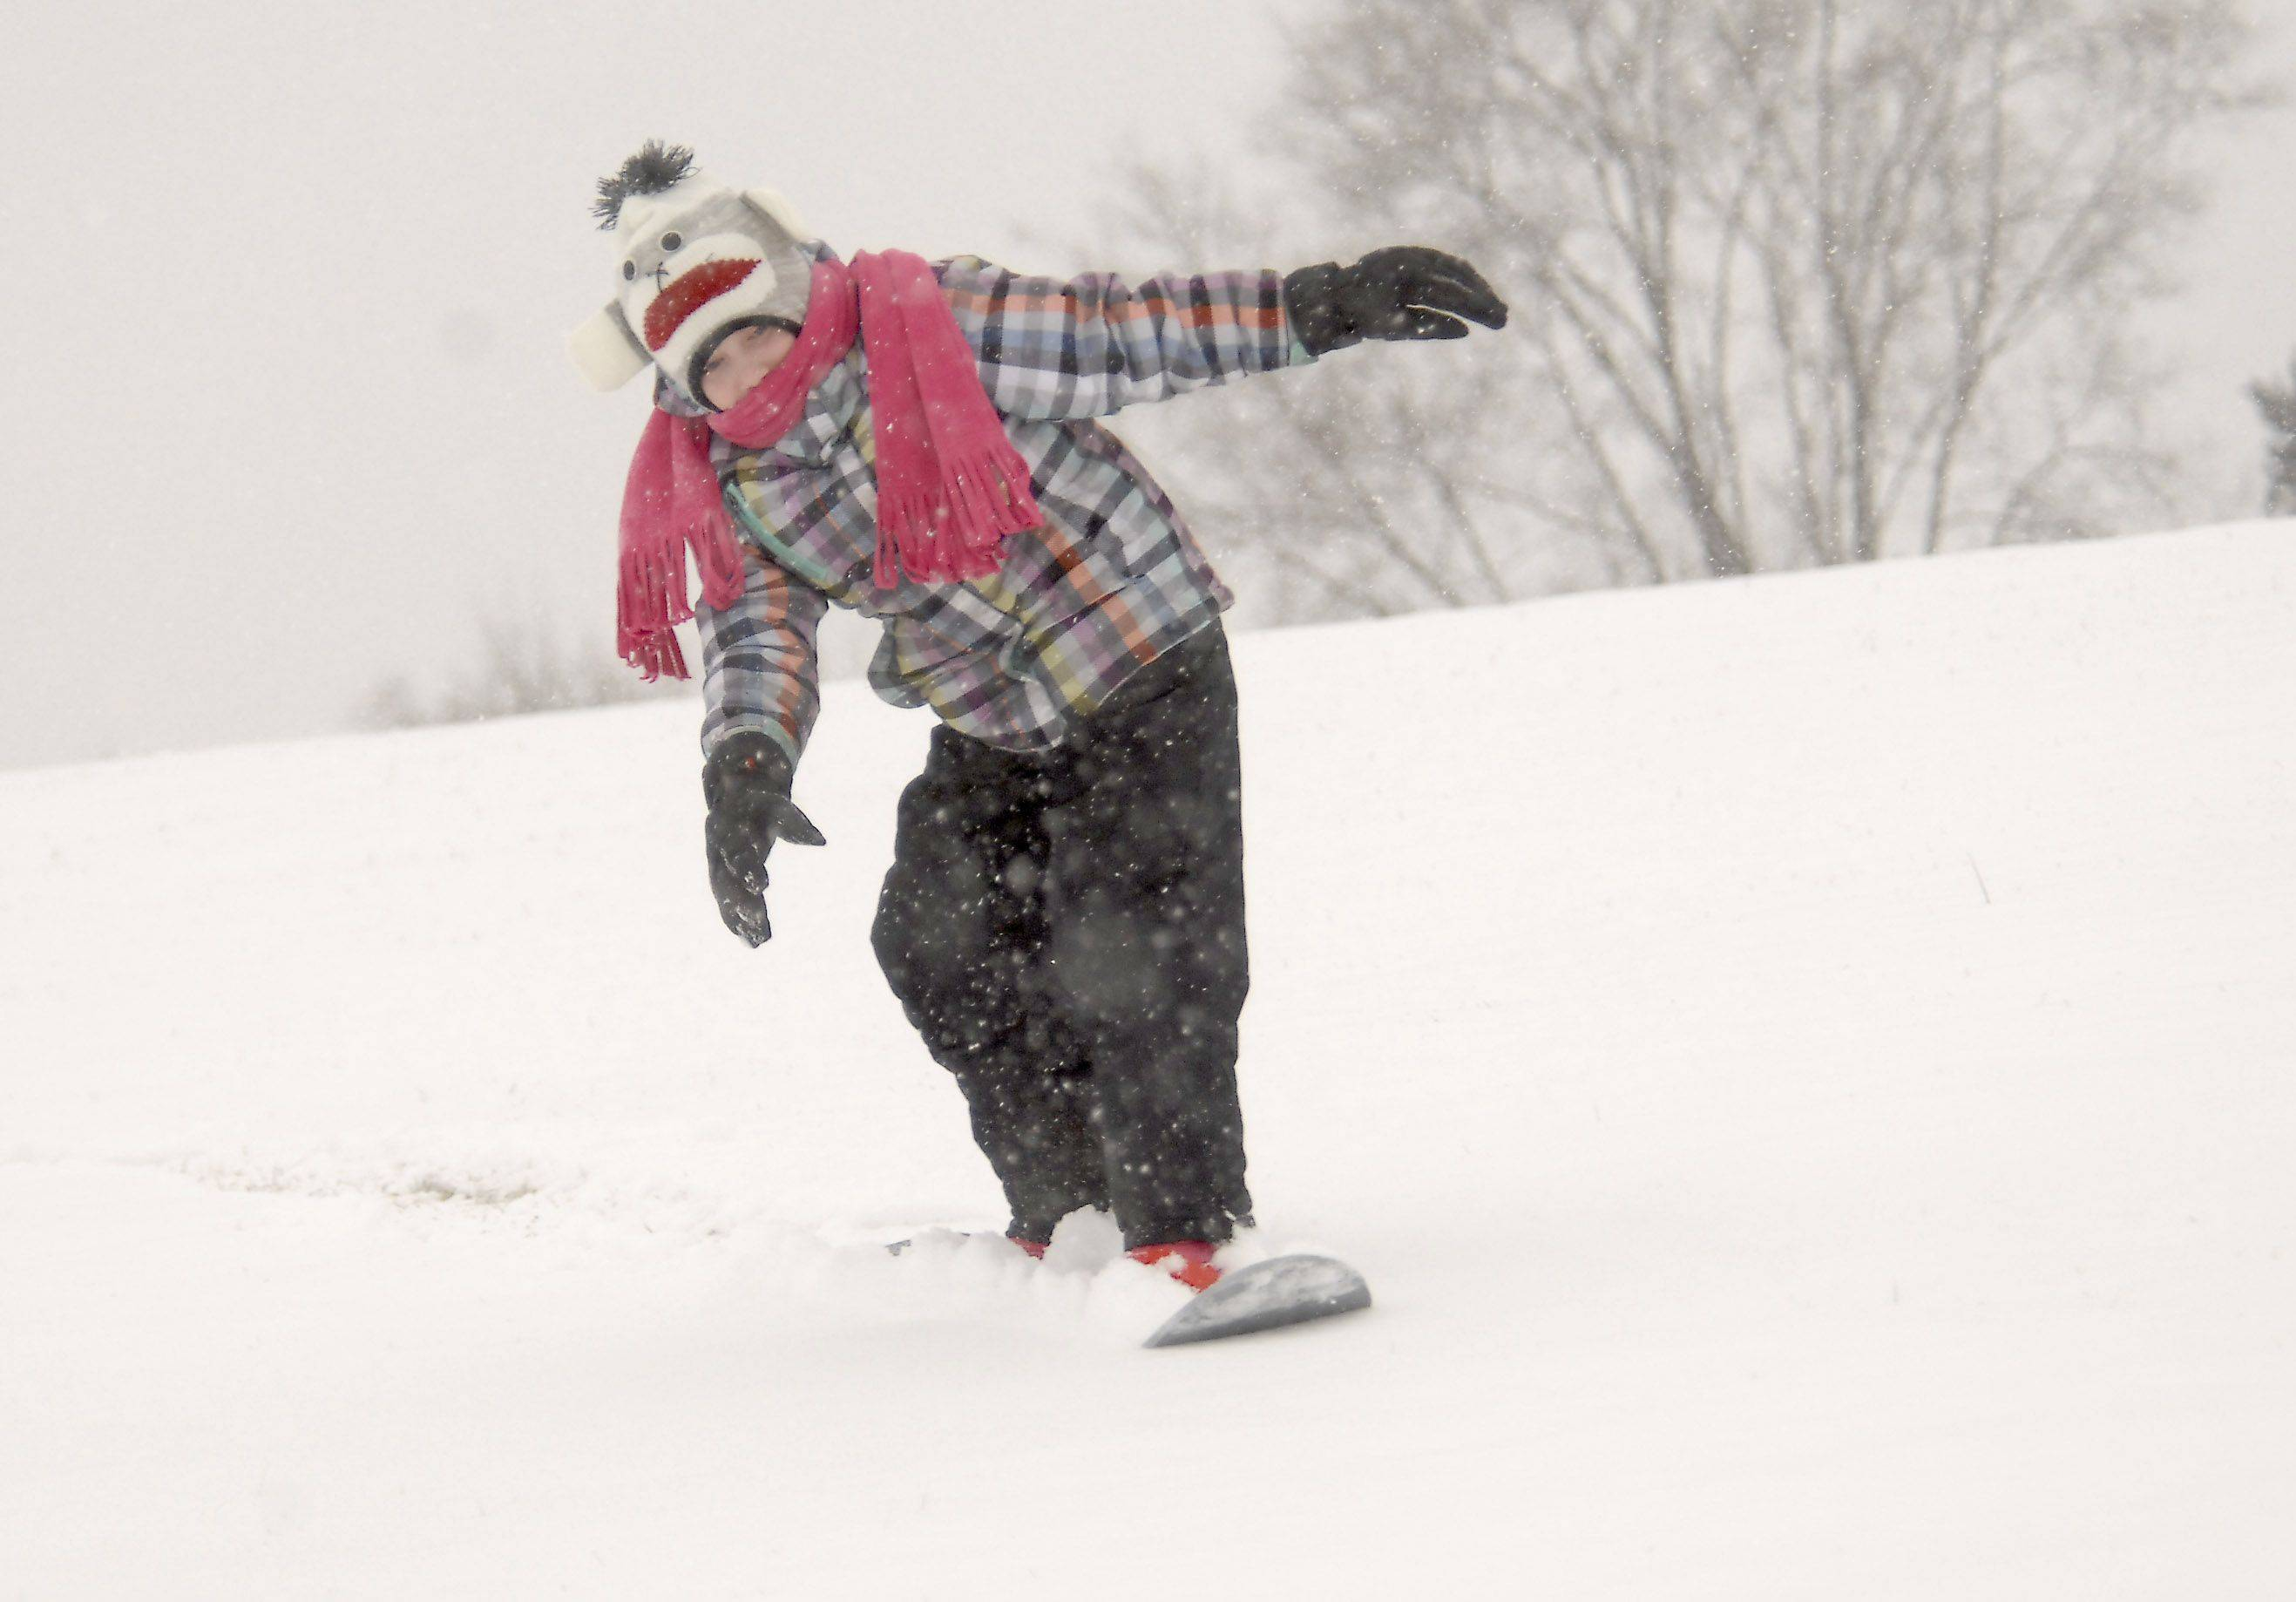 Karli Ryan, 10, of Hoffman Estates plays in the snow on Thursday afternoon.